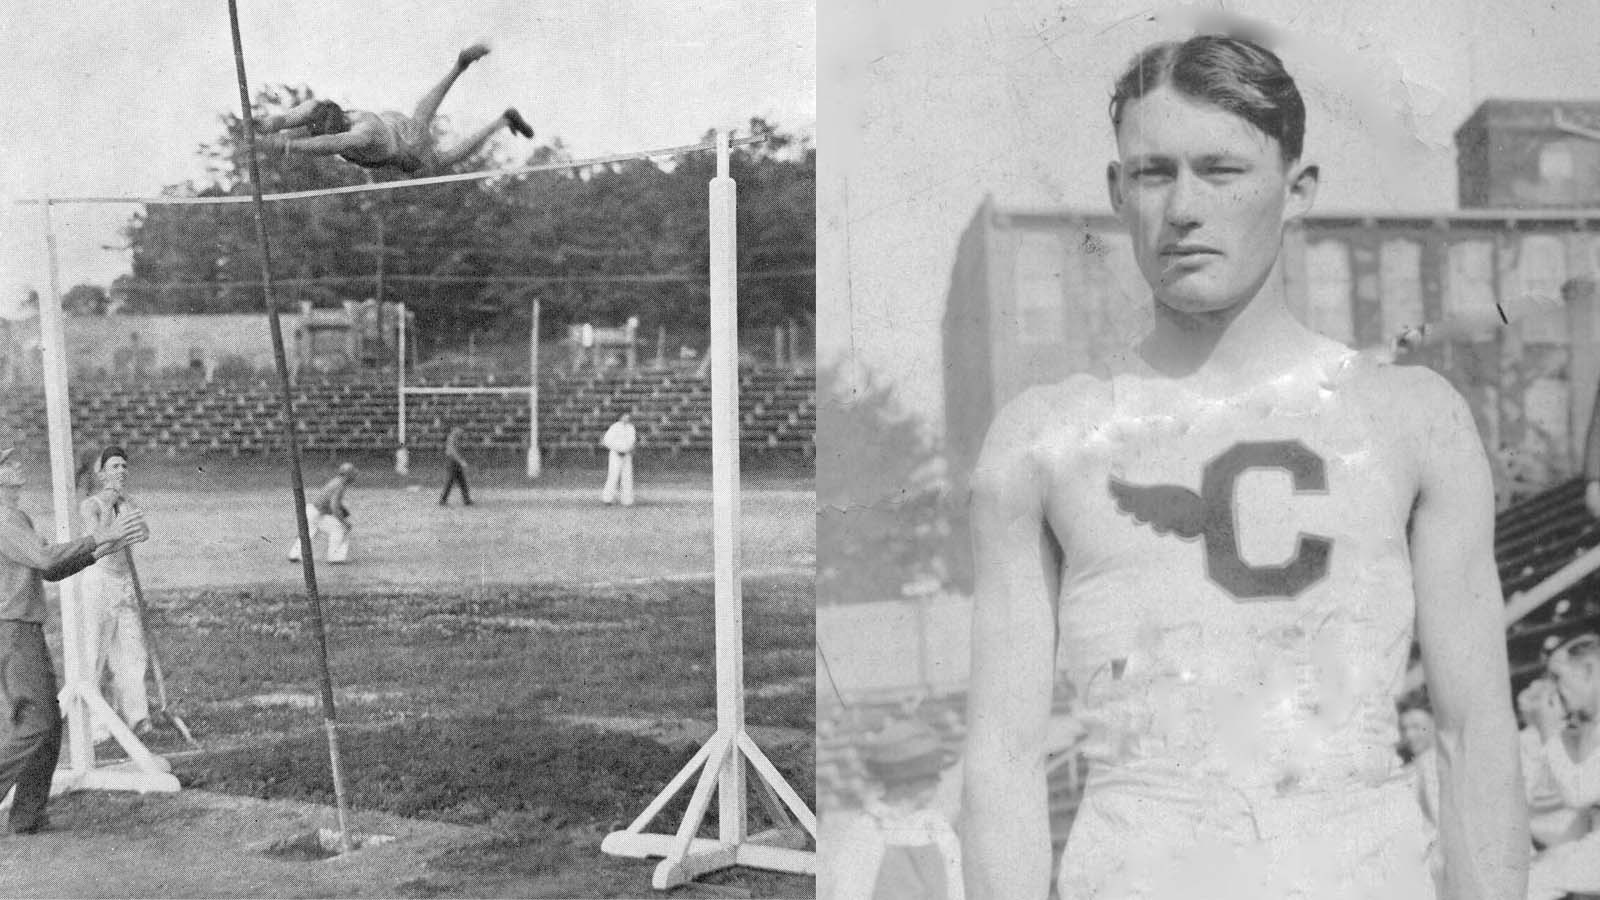 CLEMSON VAULT: Ross O'Dell, 1920's Track & Field Star